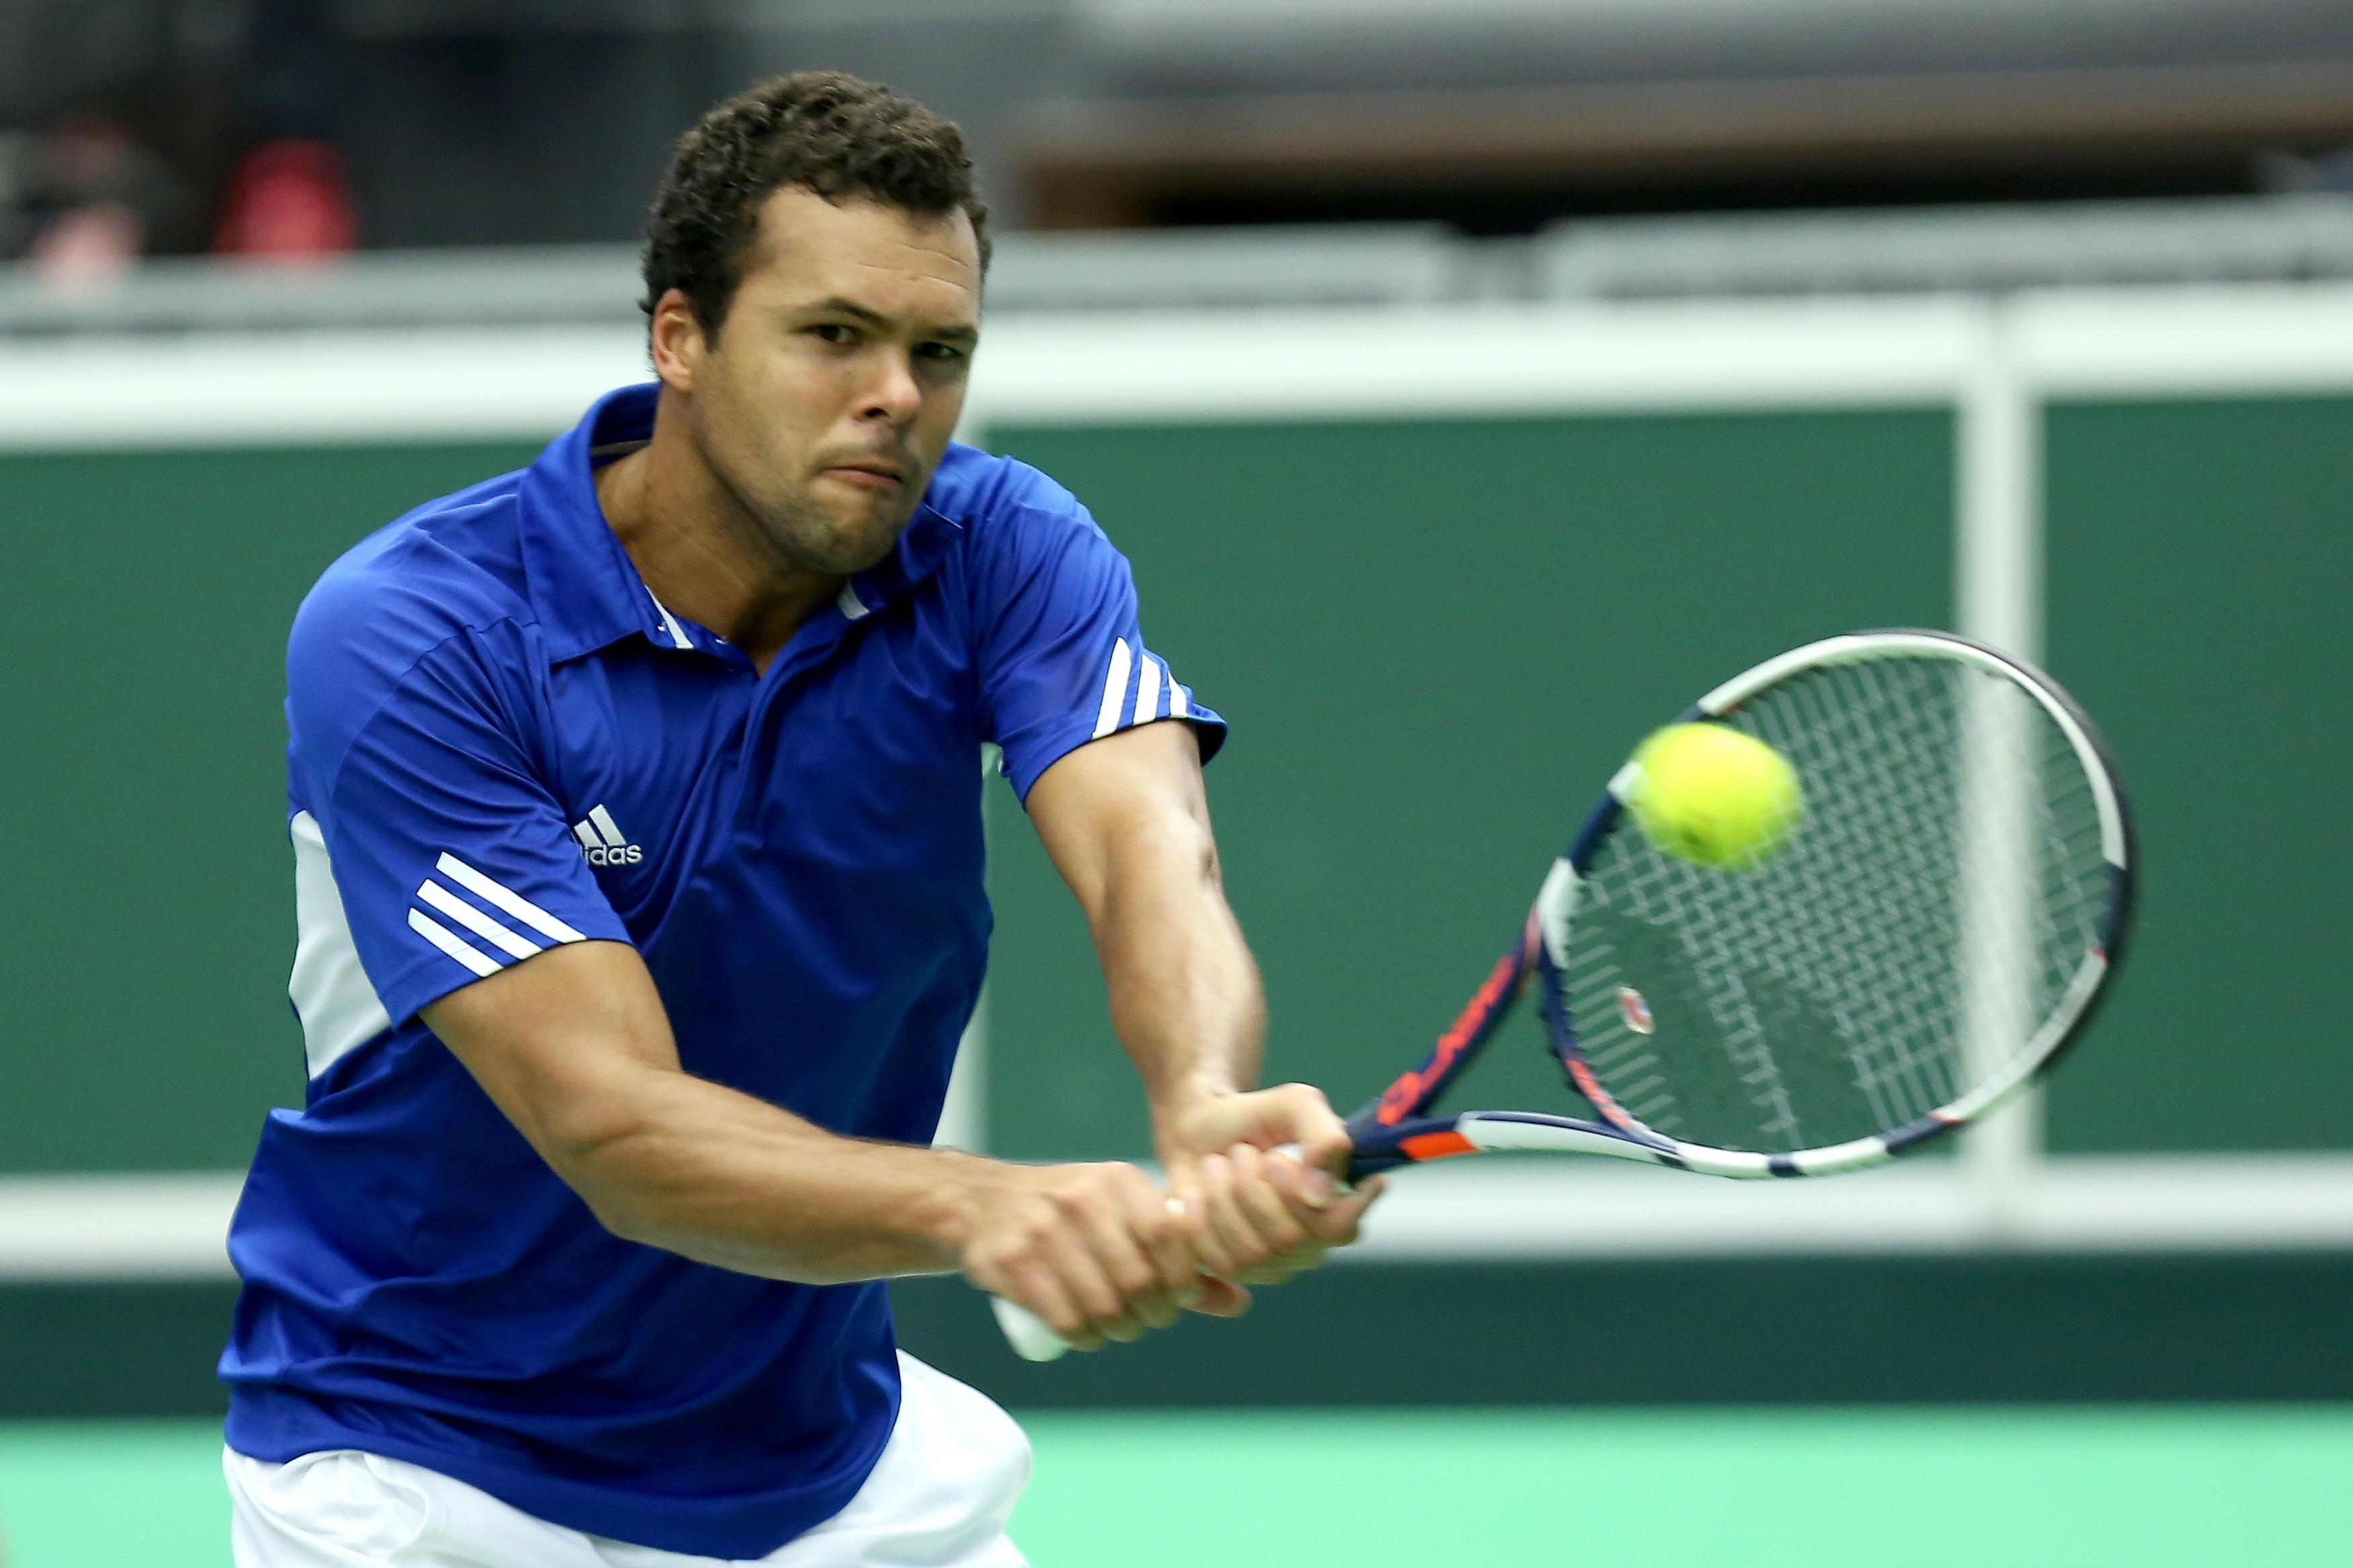 Jo-Wilfried Tsonga of France returns during his tennis Davis Cup quarterfinal match with Jiri Vesely of Czech Republic in Trinec, Czech Republic, Sunday, July 17, 2016.  (Petr Sznapka/CTK via AP)